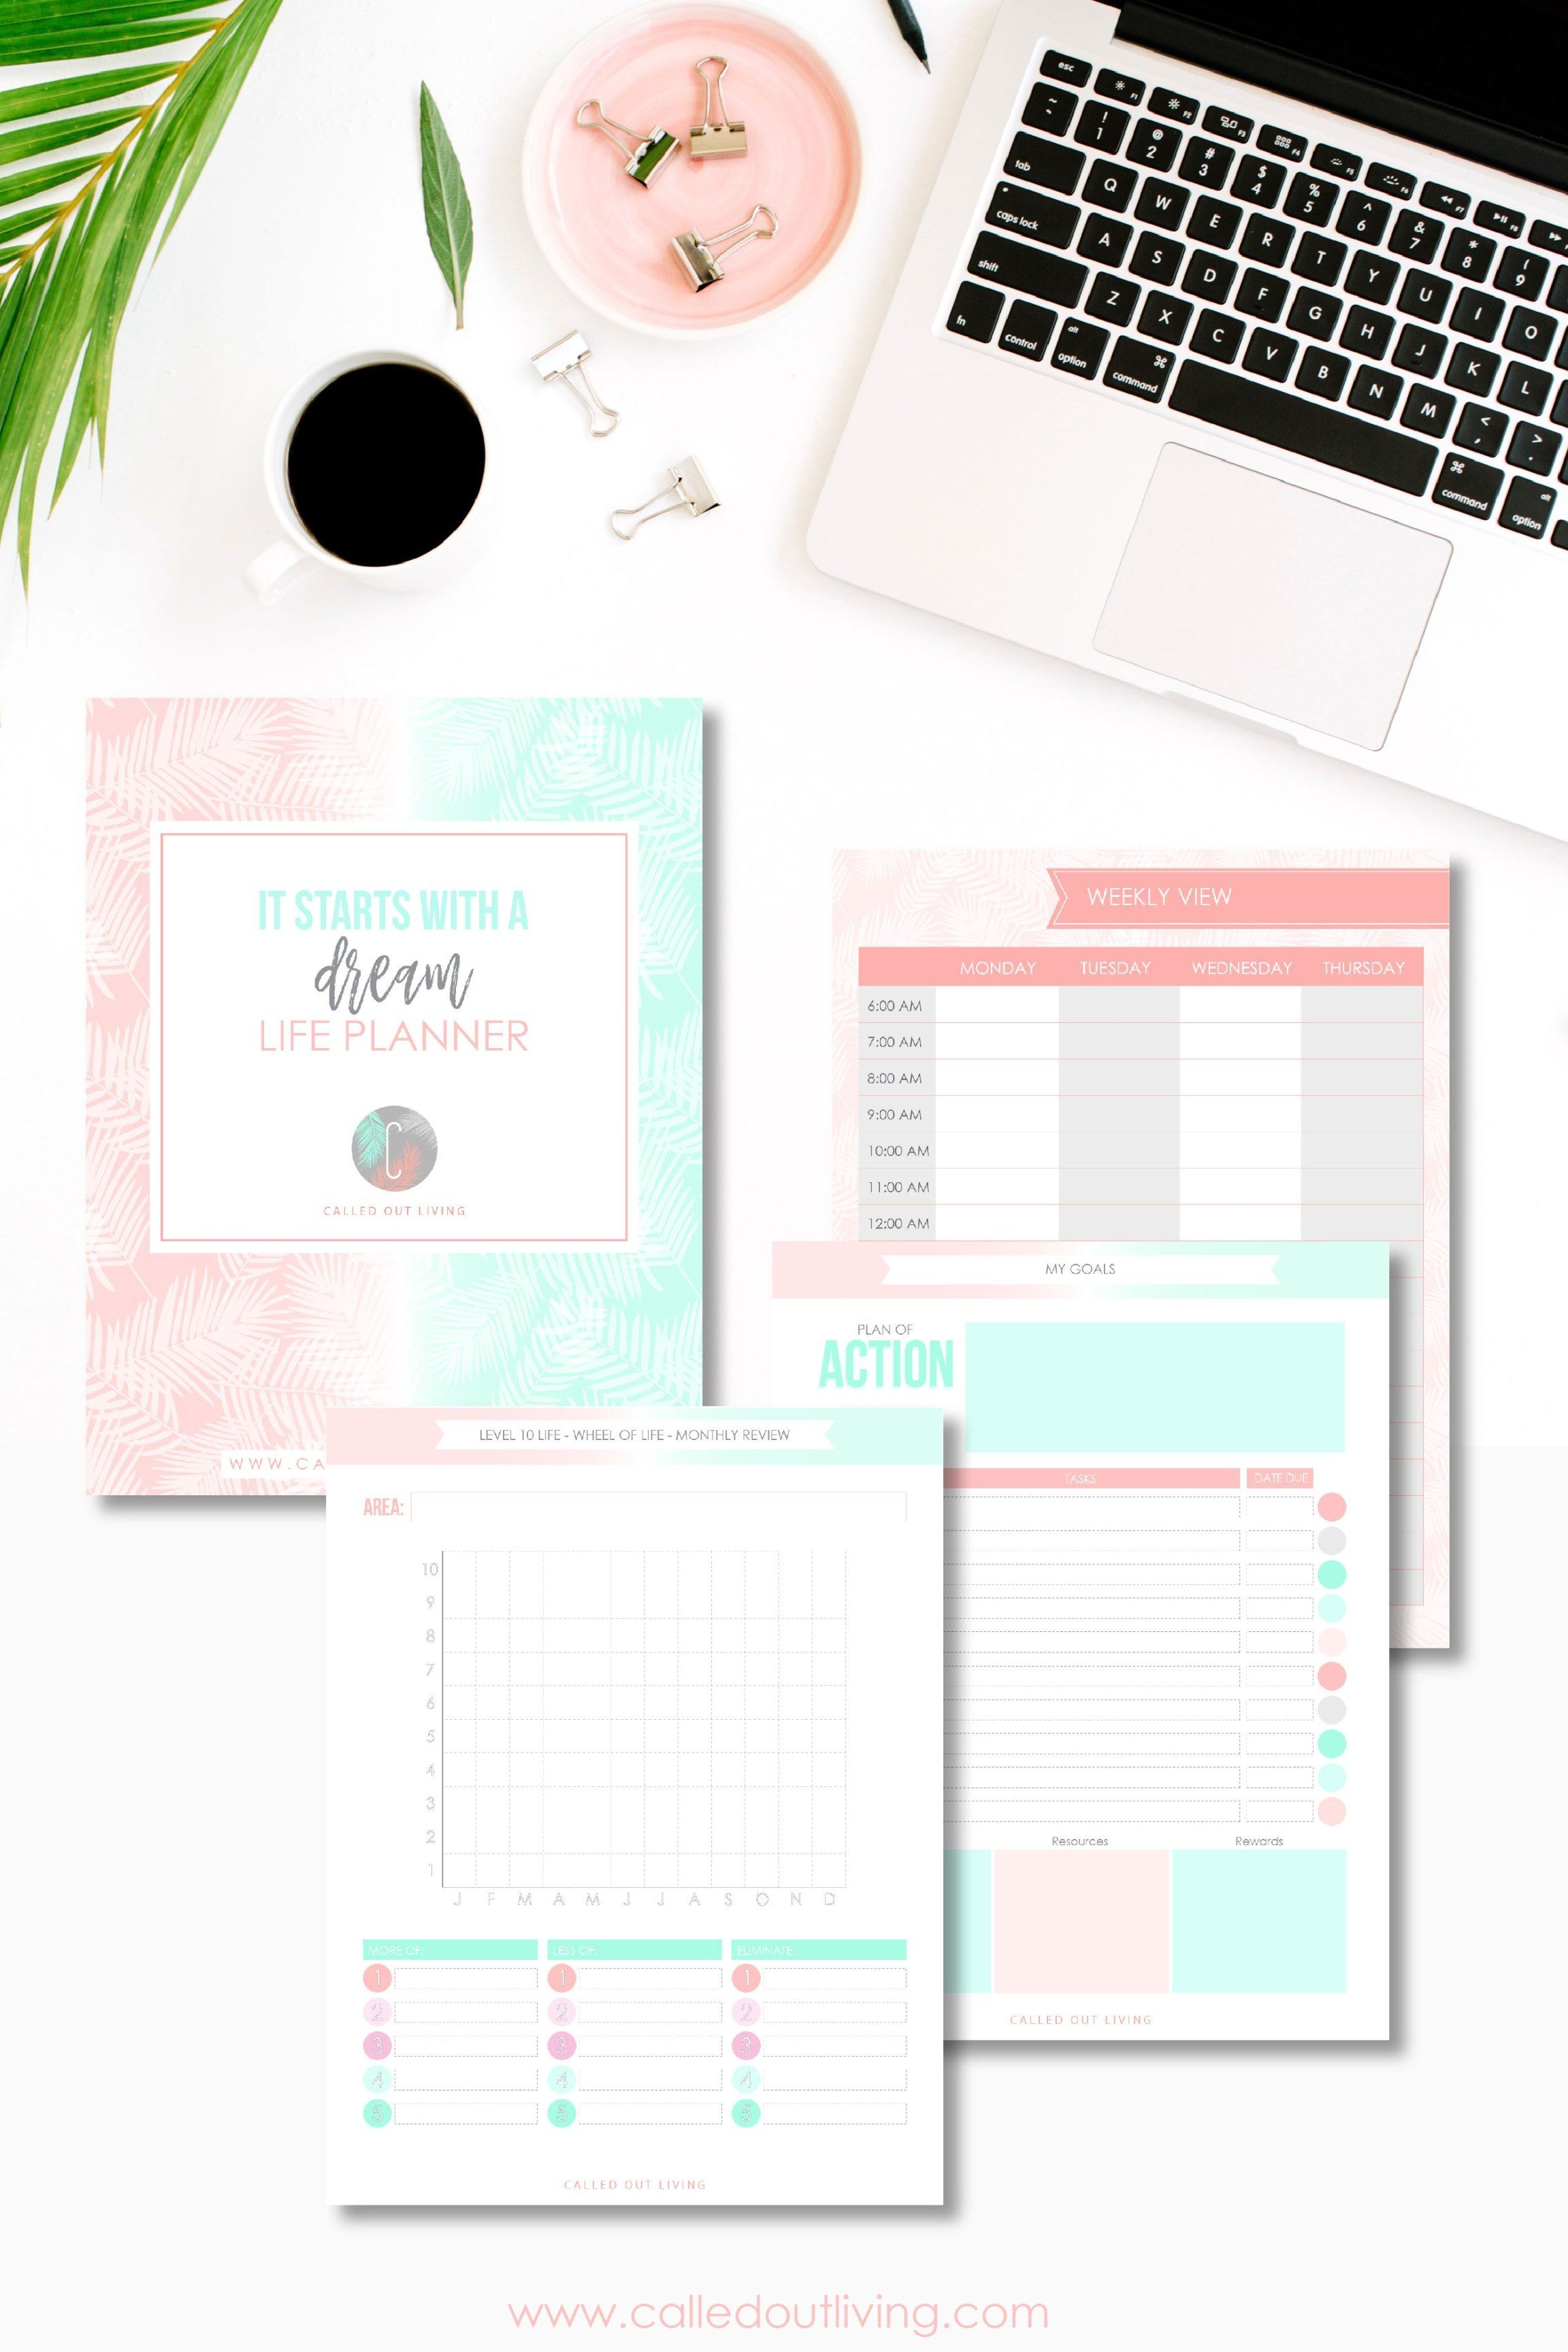 Downloaded KB Get organised and your free 2018